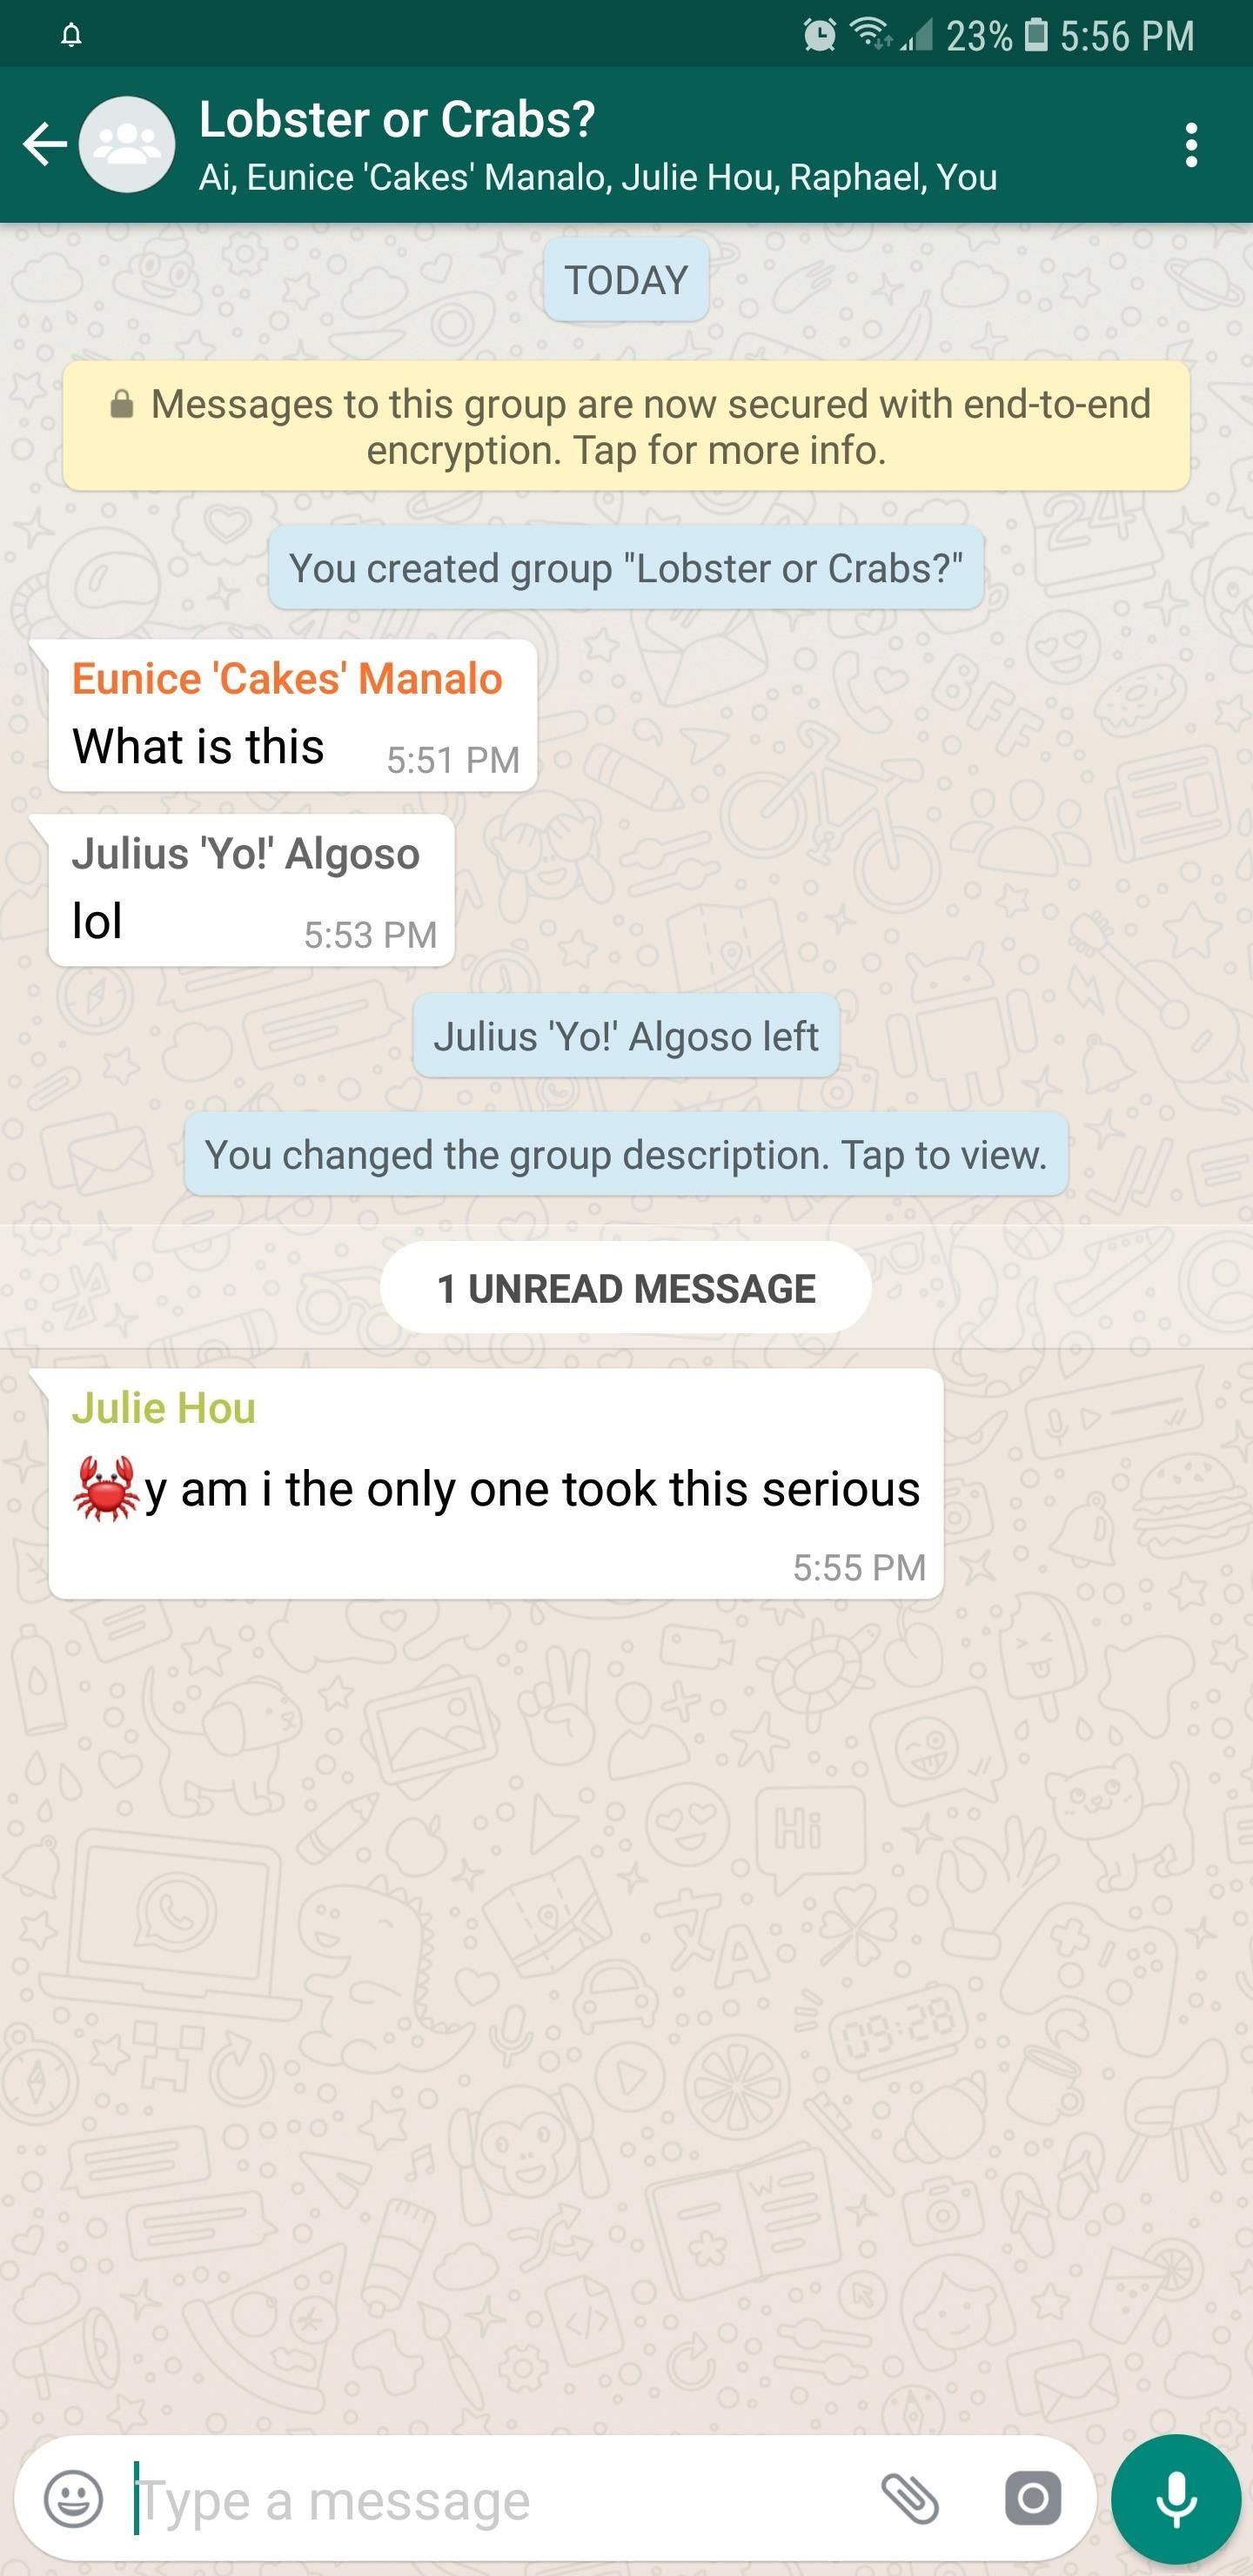 WhatsApp 101: How to Add Descriptions to Group Chats